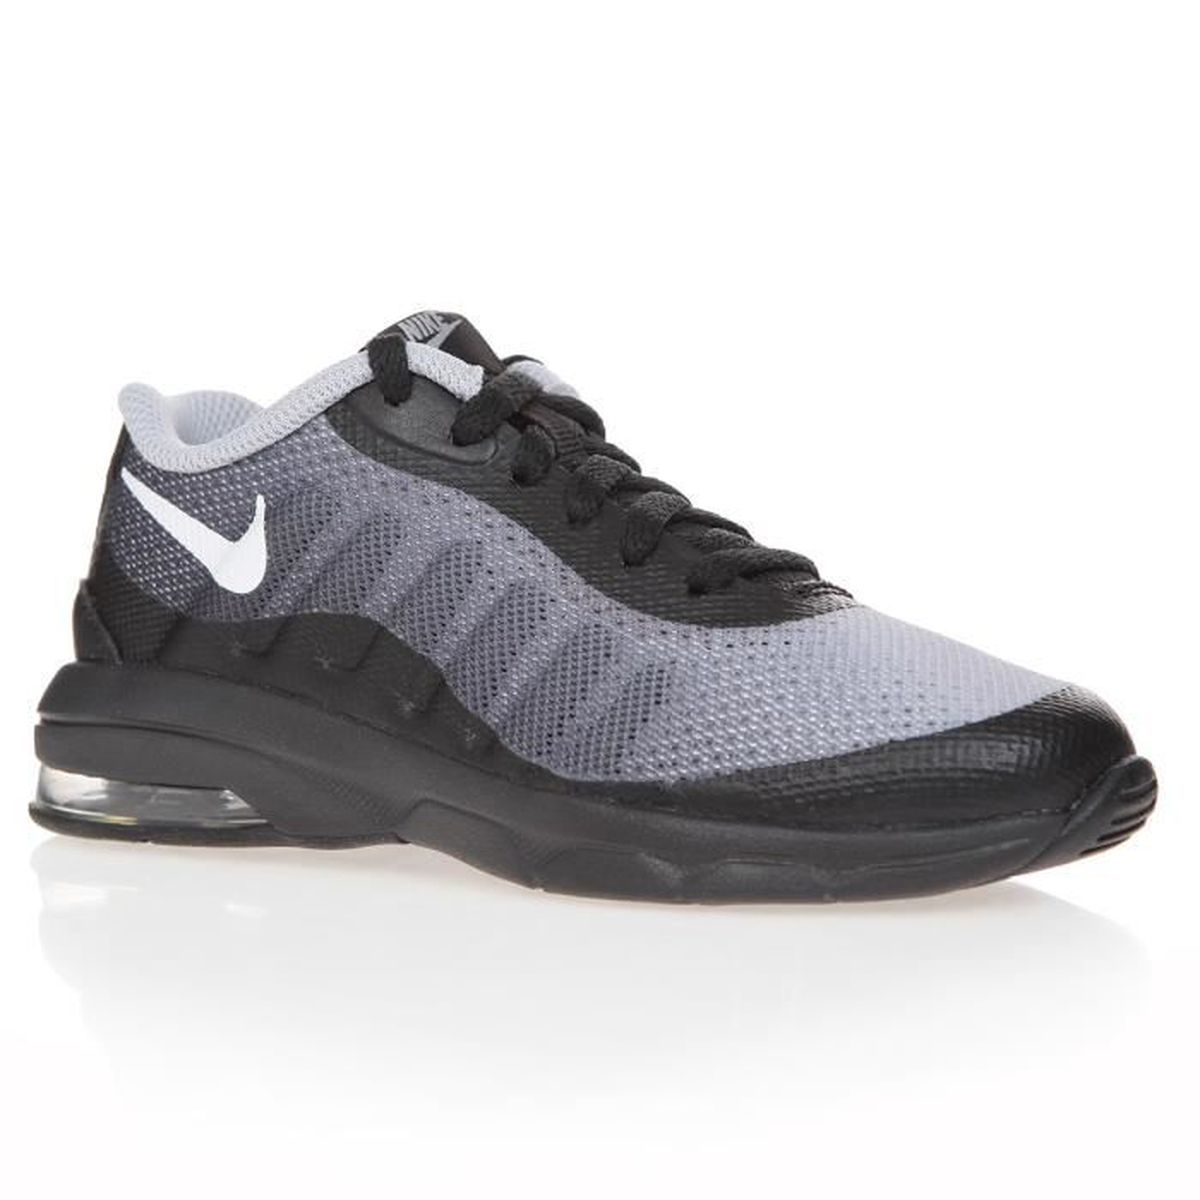 NIKE Baskets Air Max Invigor Print - Enfant Garçon d84911c45cc9